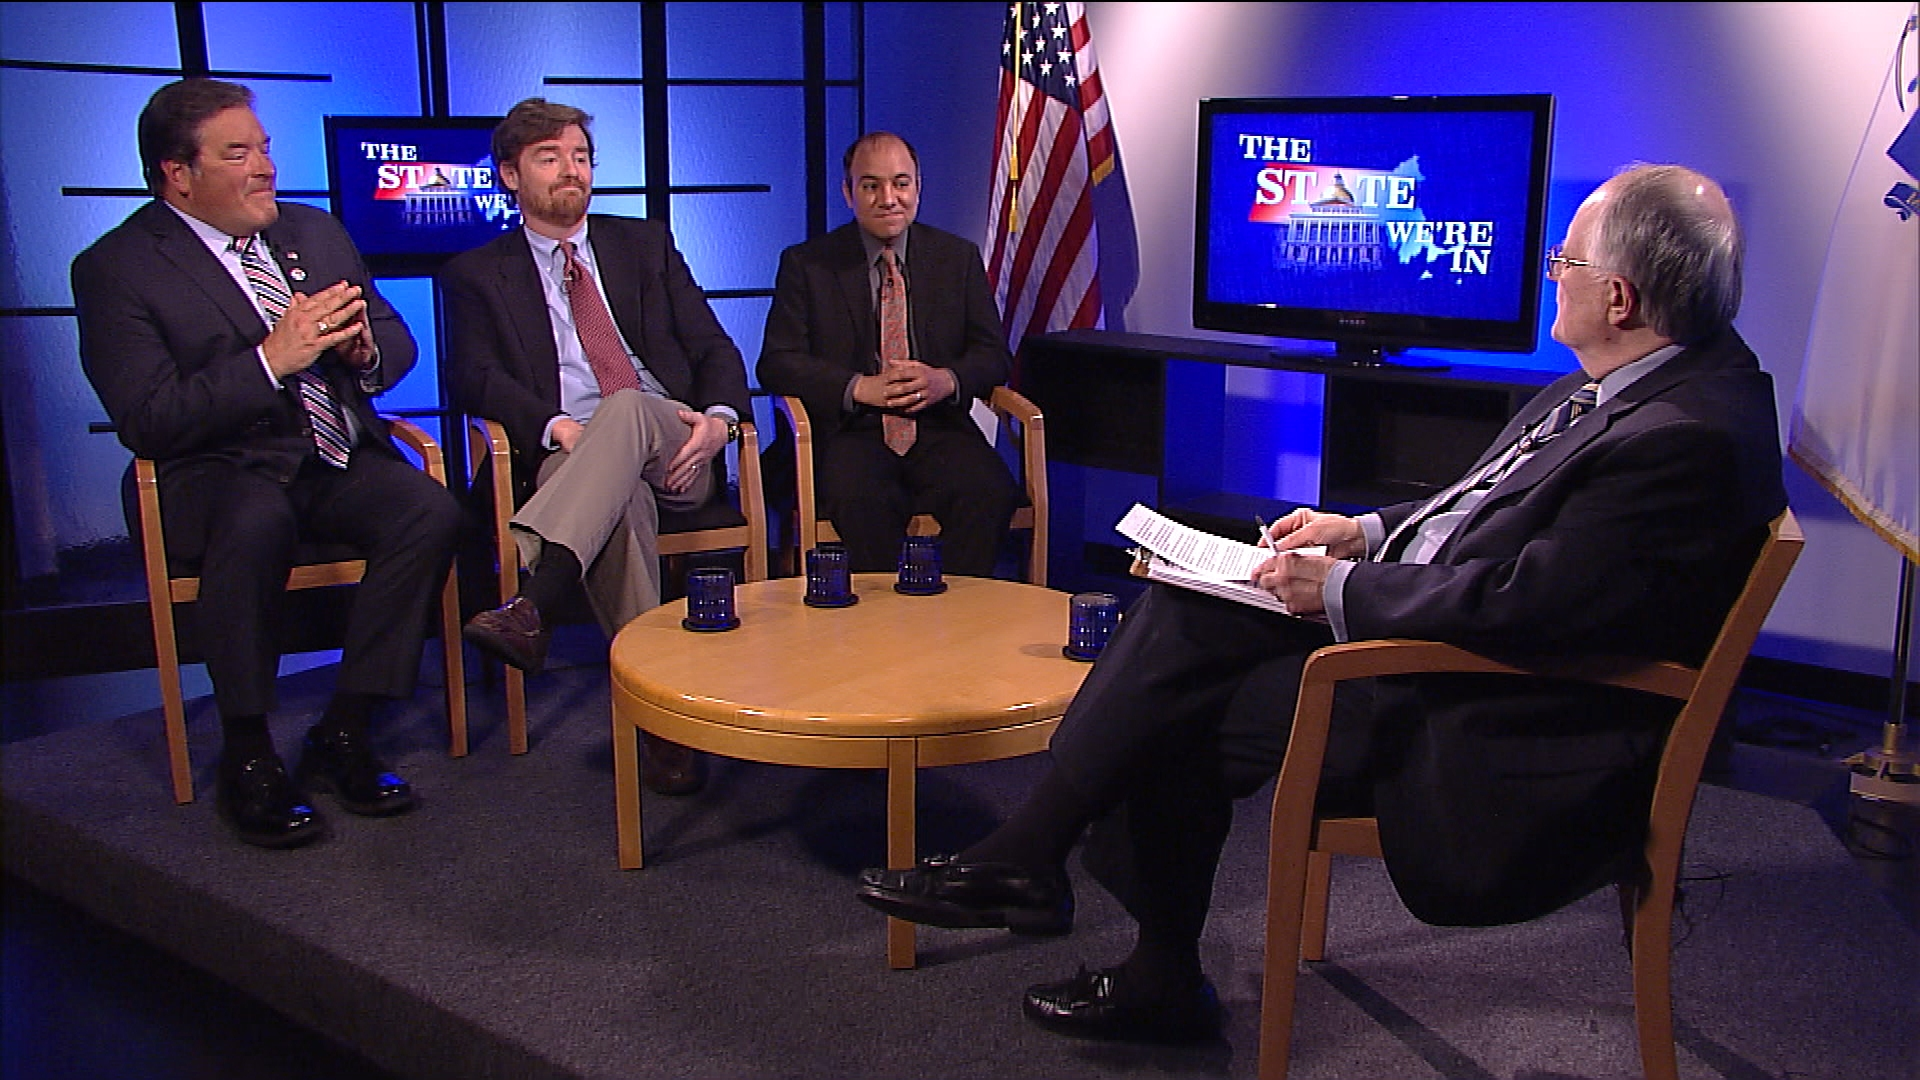 Political consultant Tony Cignoli, Prof. Jerold Duquette, & Rob Rizzuto discuss the national political scene, including the Comey firing and Trump's budget.